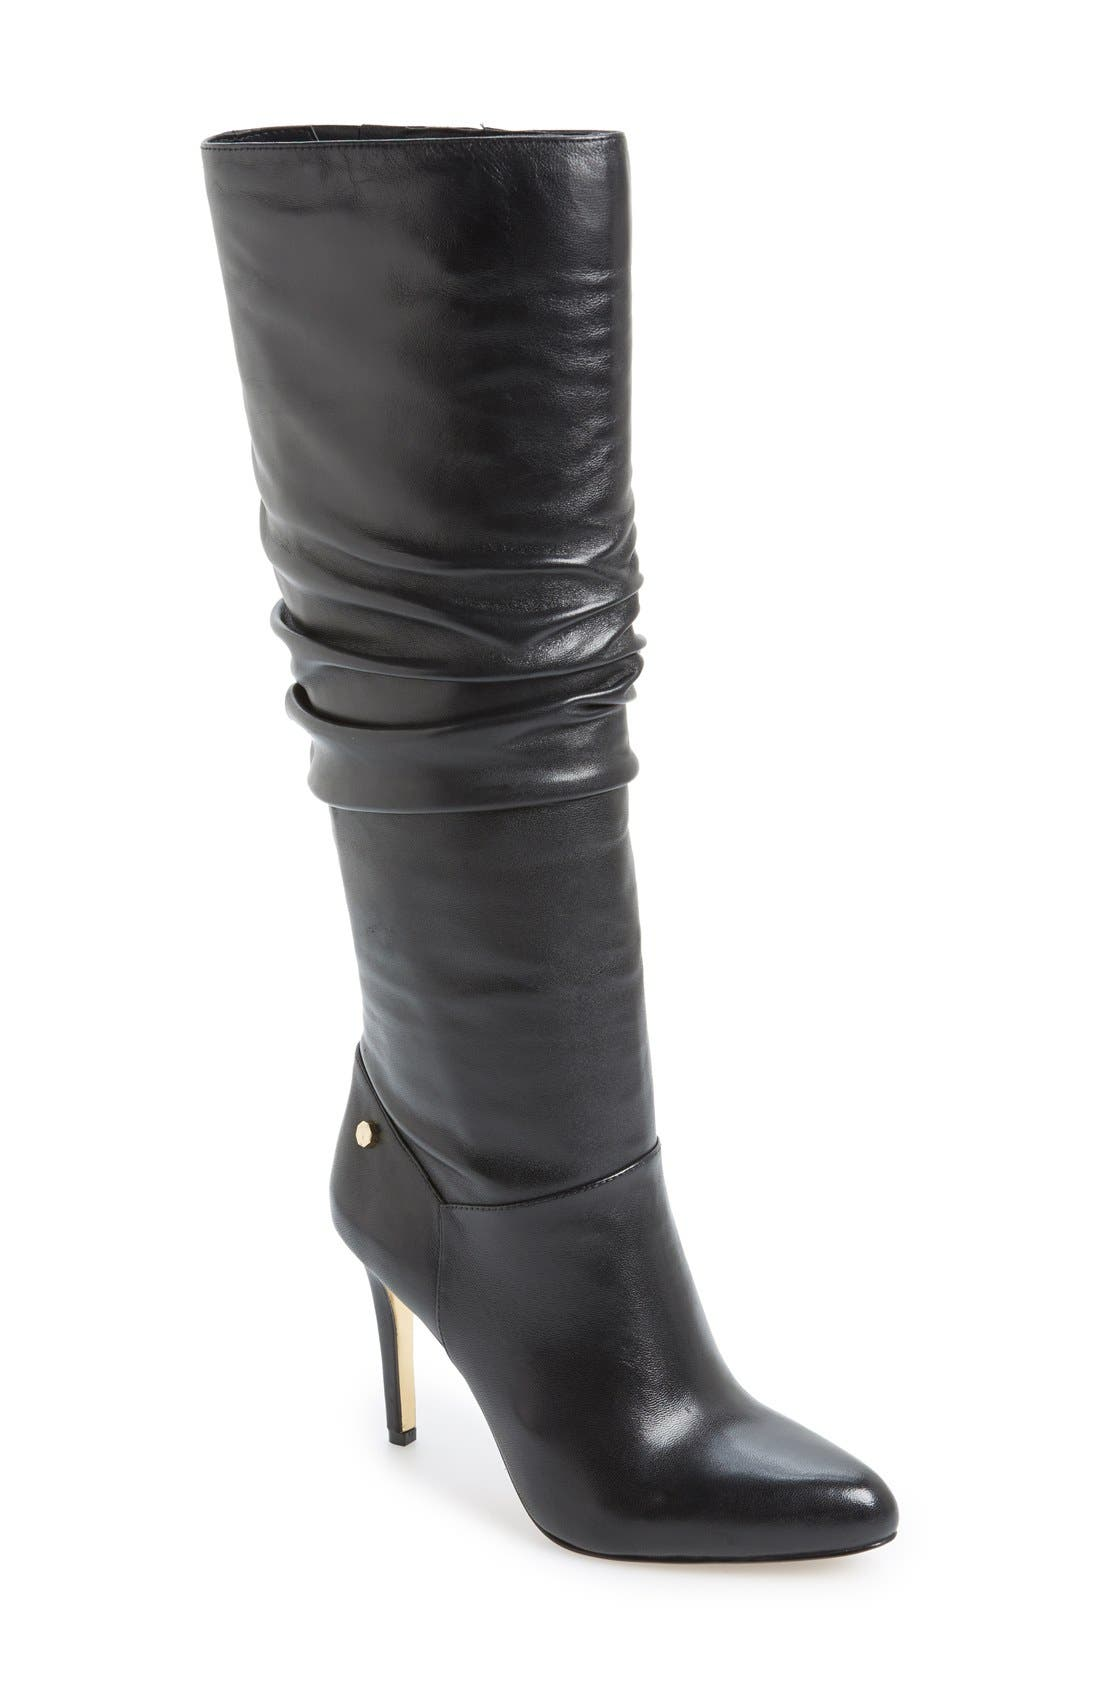 Alternate Image 1 Selected - Louise et Cie 'Sallie' Tall Boot (Women)